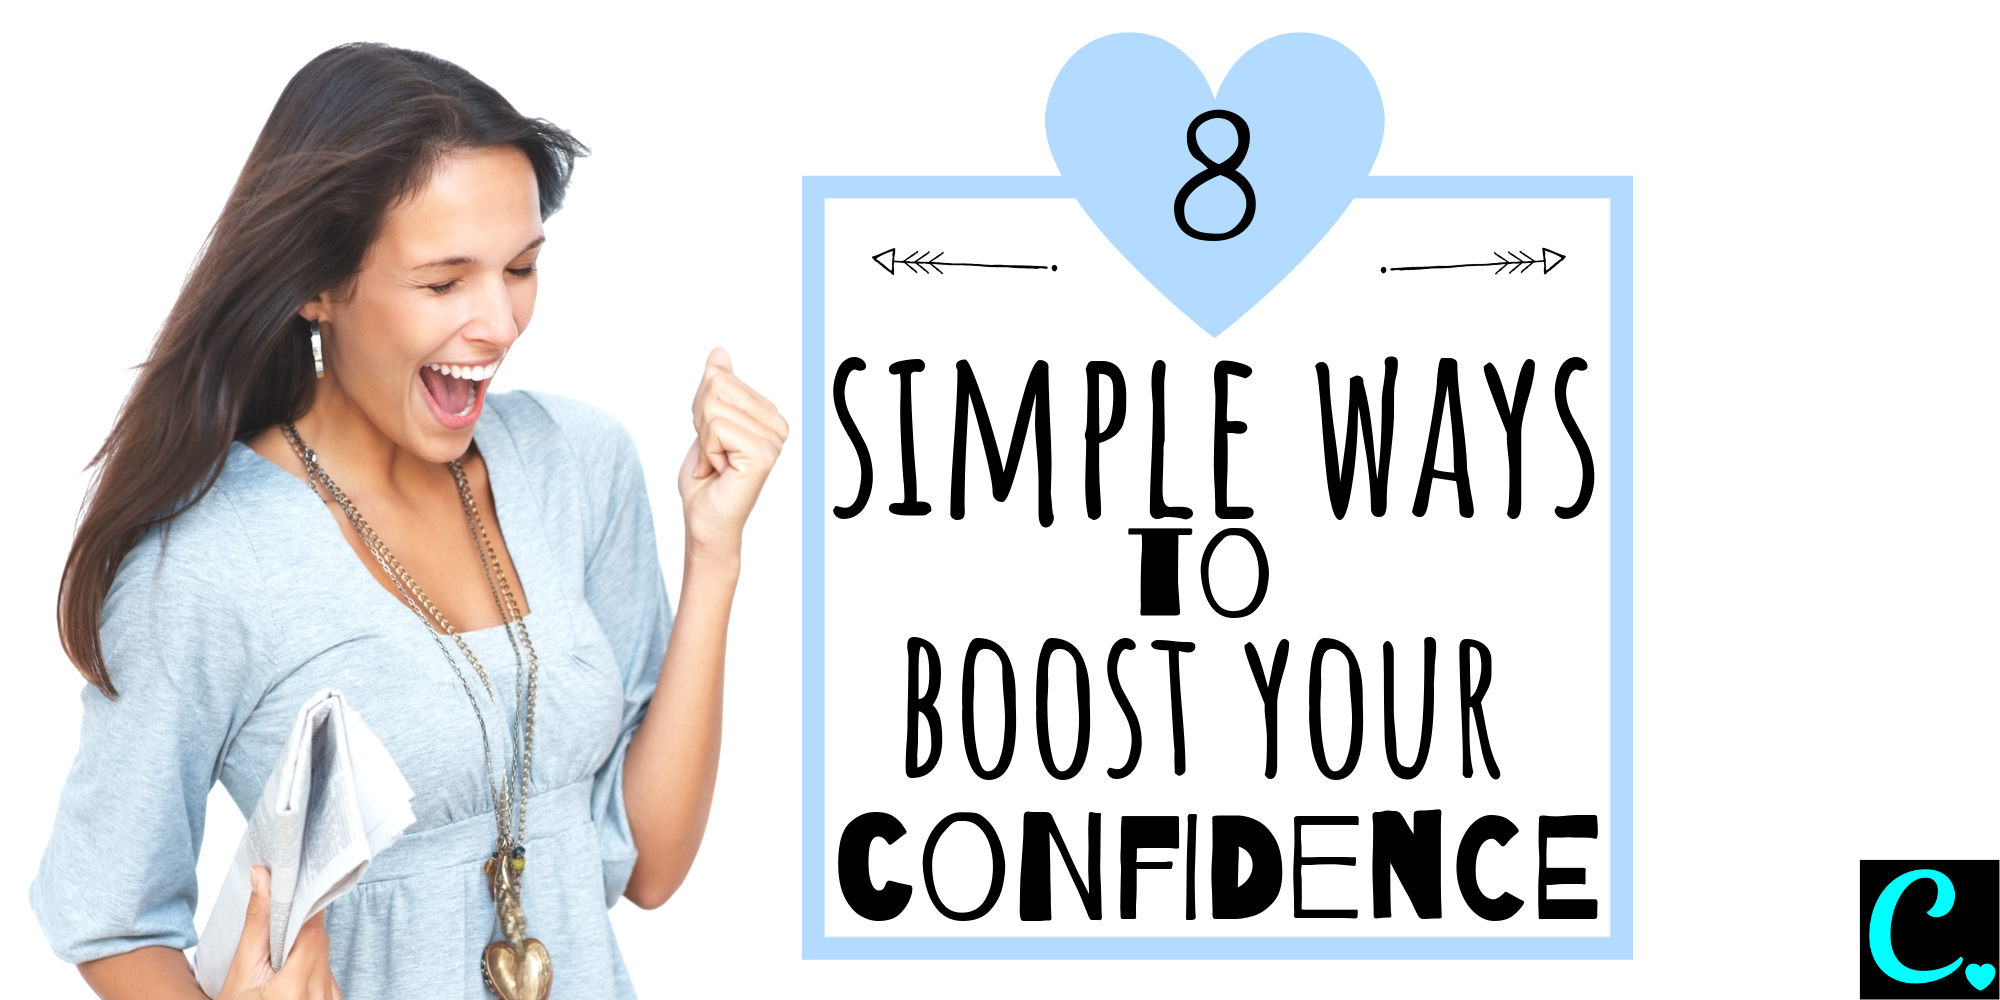 How To Be Brave. 8 Proven Ways to boost your confidence! how to be brave tips | being brave inspiration | personal development | how to be confident | Via: https://captivatingcrazy.com #captivatingcrazy #howtobebrave #howtobebravetips #confidfencetips #facefears #comfortzone